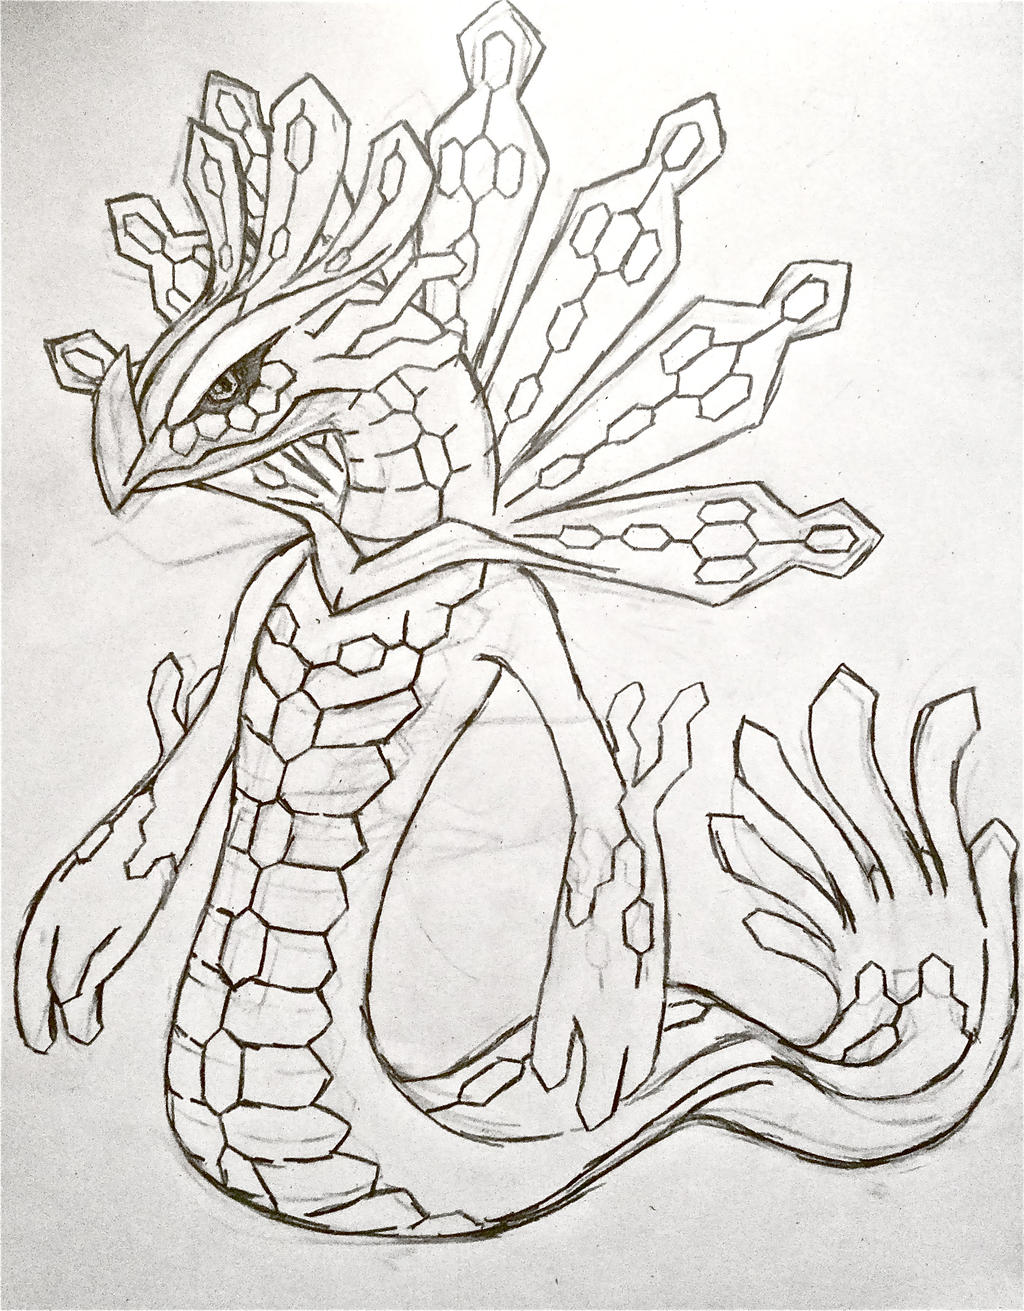 pokemon zygarde coloring pages - photo#20